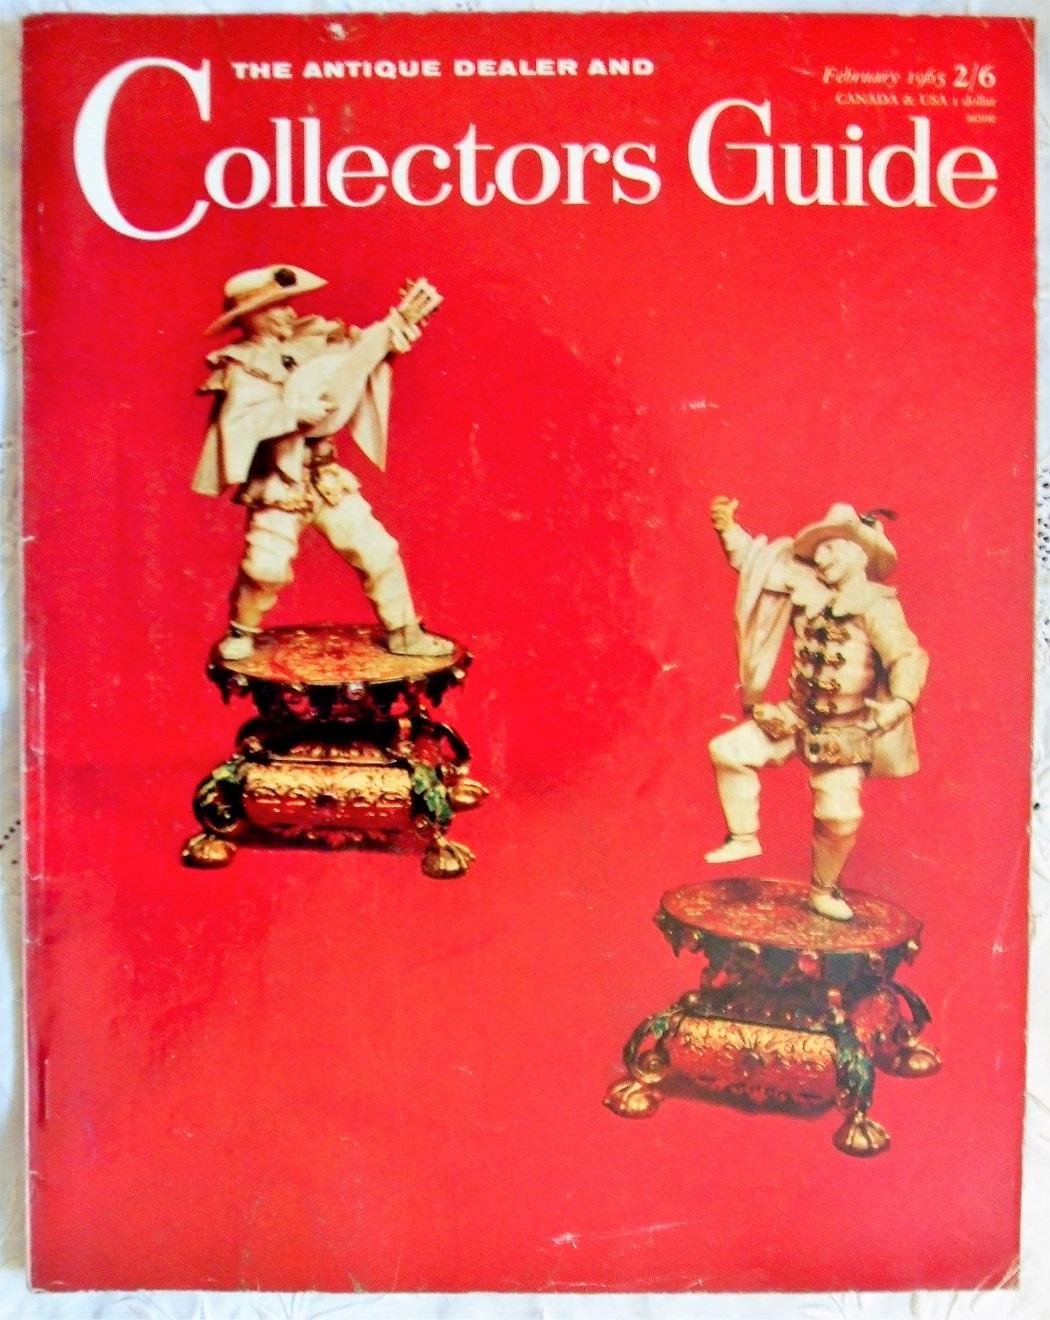 Collectors Guide February 1965